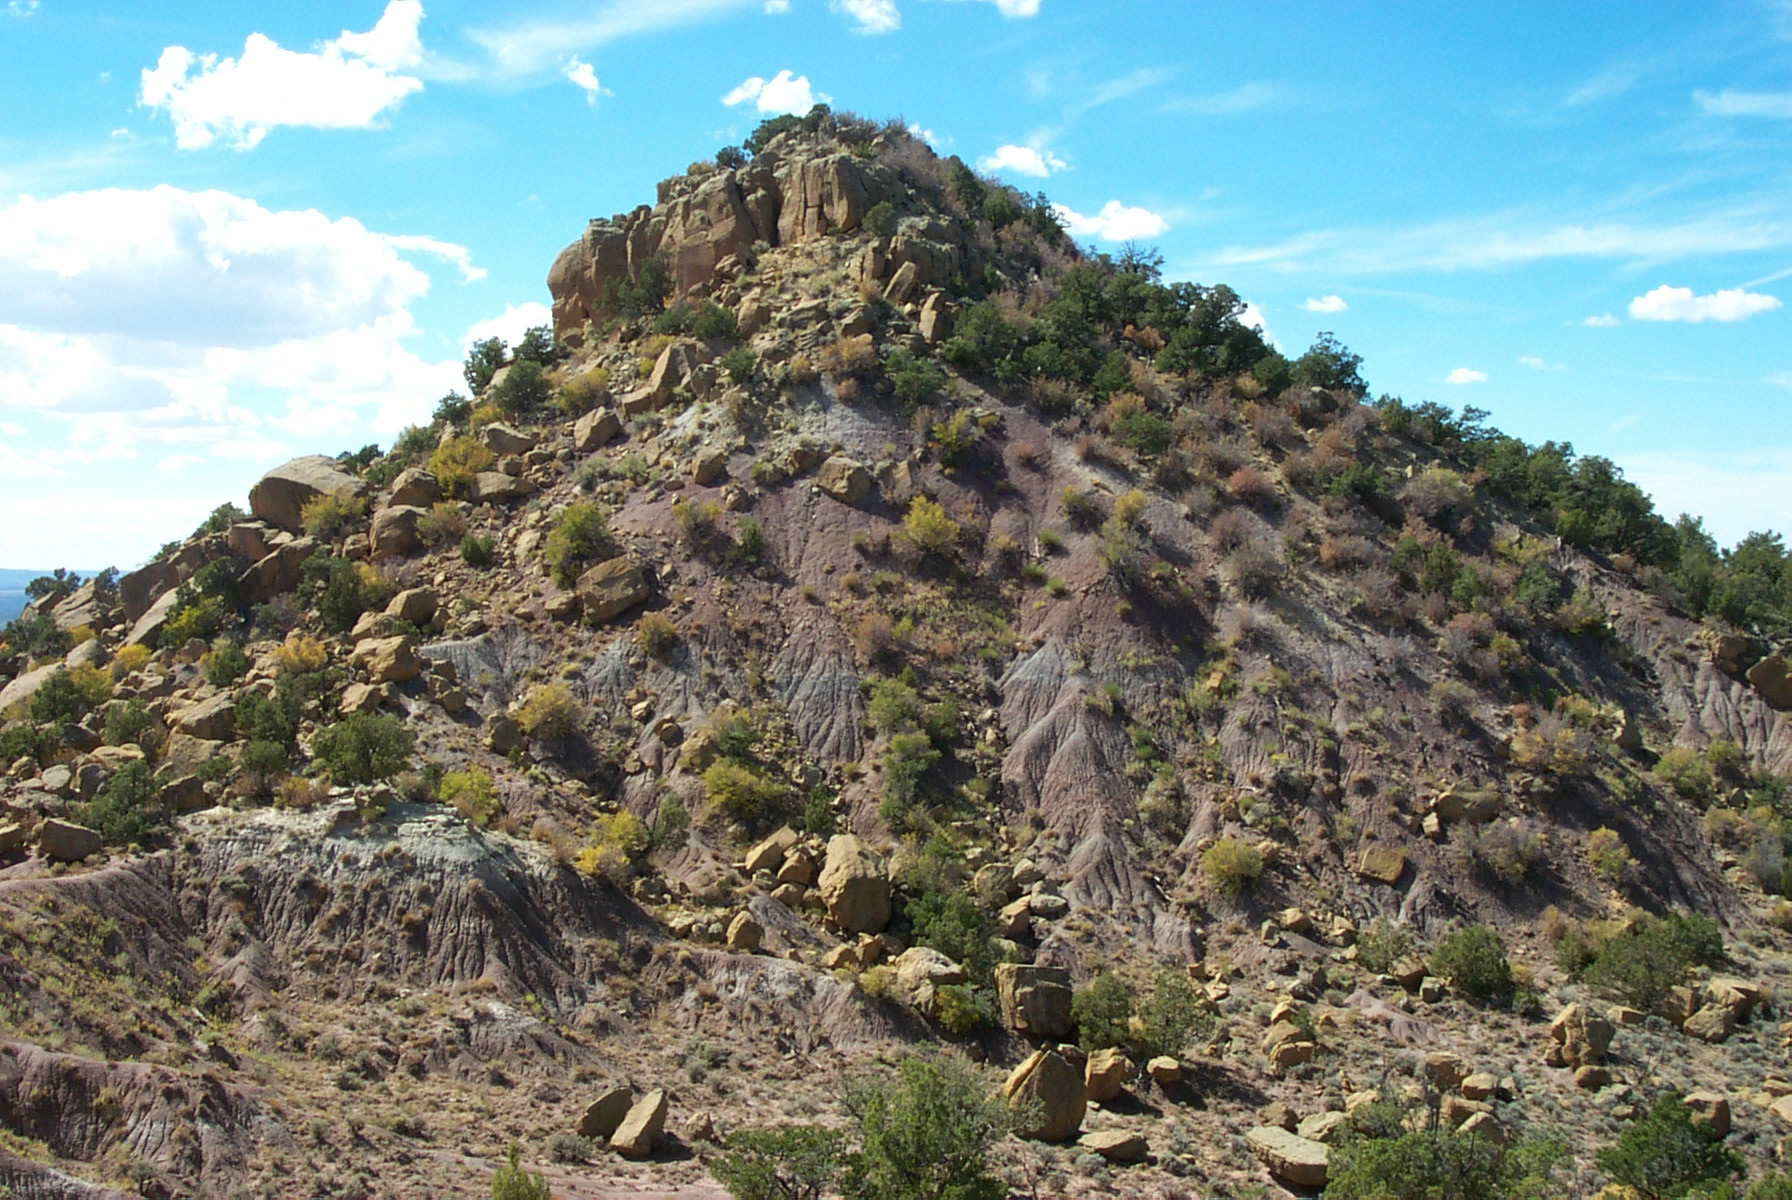 Image 5. Gobernador Knob [Navajo = Ch'óol'į́'í], viewed from the east across the headwaters of Gobernador Canyon. Sandstone caprice boulders armor the slope as they tumble down after the underlying shale is eroded. No trails lead to the summit, but a scramble is possible up the eastern or northern slope. The dominant vegetation in pinion pine, juniper, mountain mahogany, and manzanita [New Mexico, USA]. Permission from the American Geographical Society (http://americangeo.org) and the author/photographer, Kevin Blake (http://www.k-state.edu/geography/kblake/), September 2000.